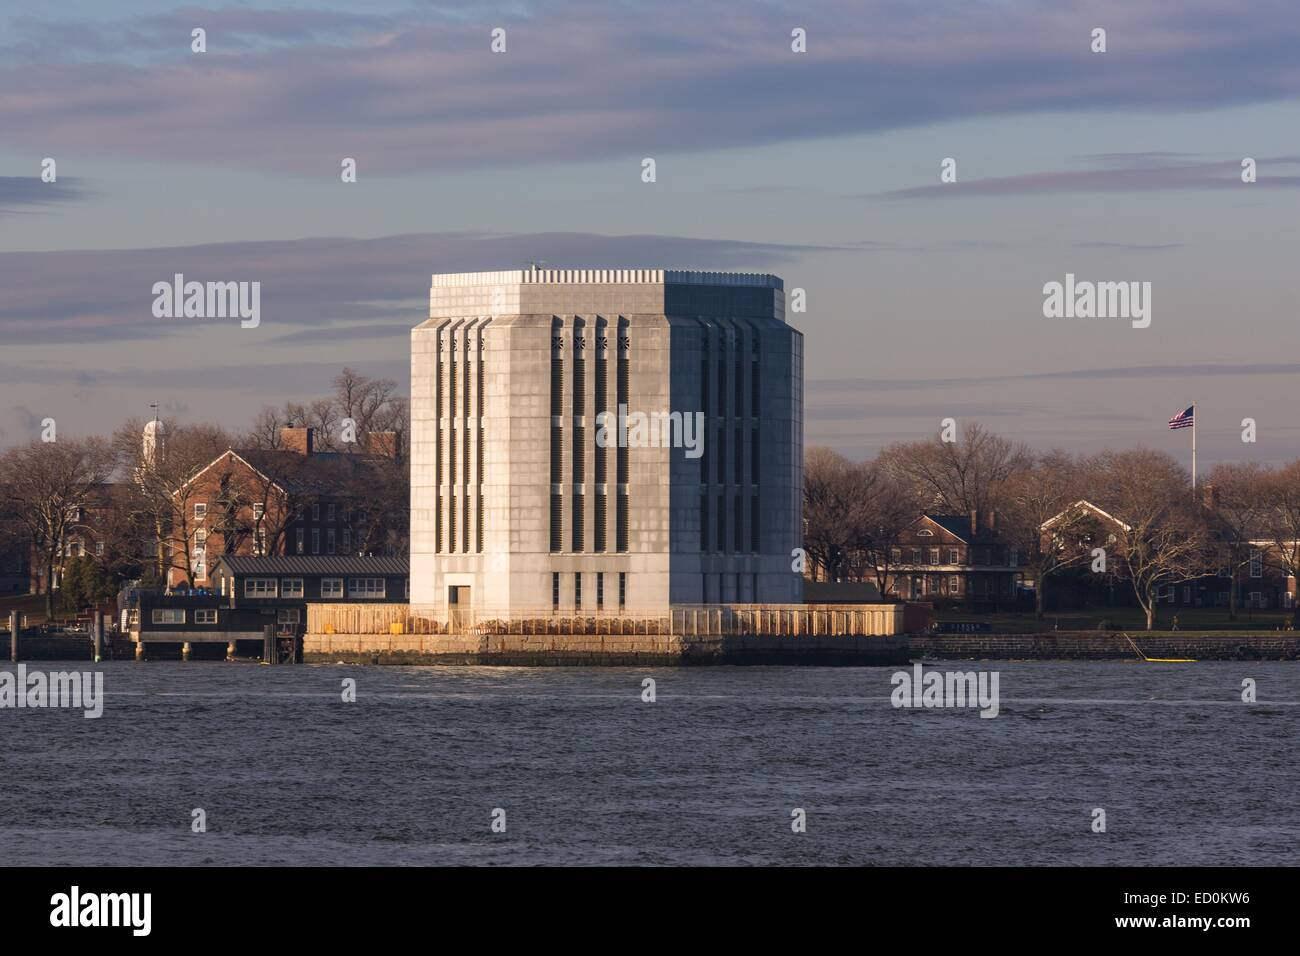 Governor's Island ventilation building from the Brooklyn Bridge park across the East River December 17, 2014 - Stock Image